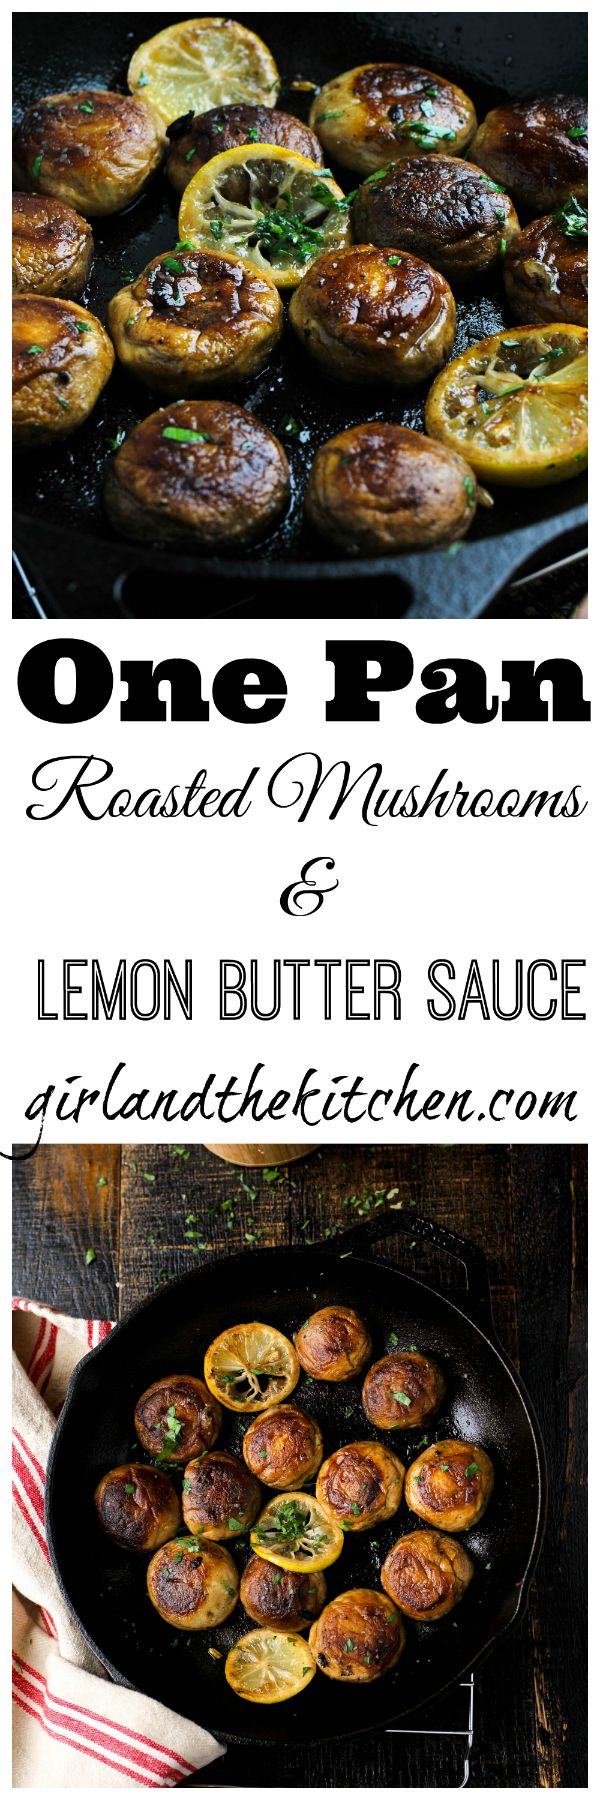 An easy and unbelievably flavorful one pan roasted mushroom dish all in a delicious lemon butter sauce.